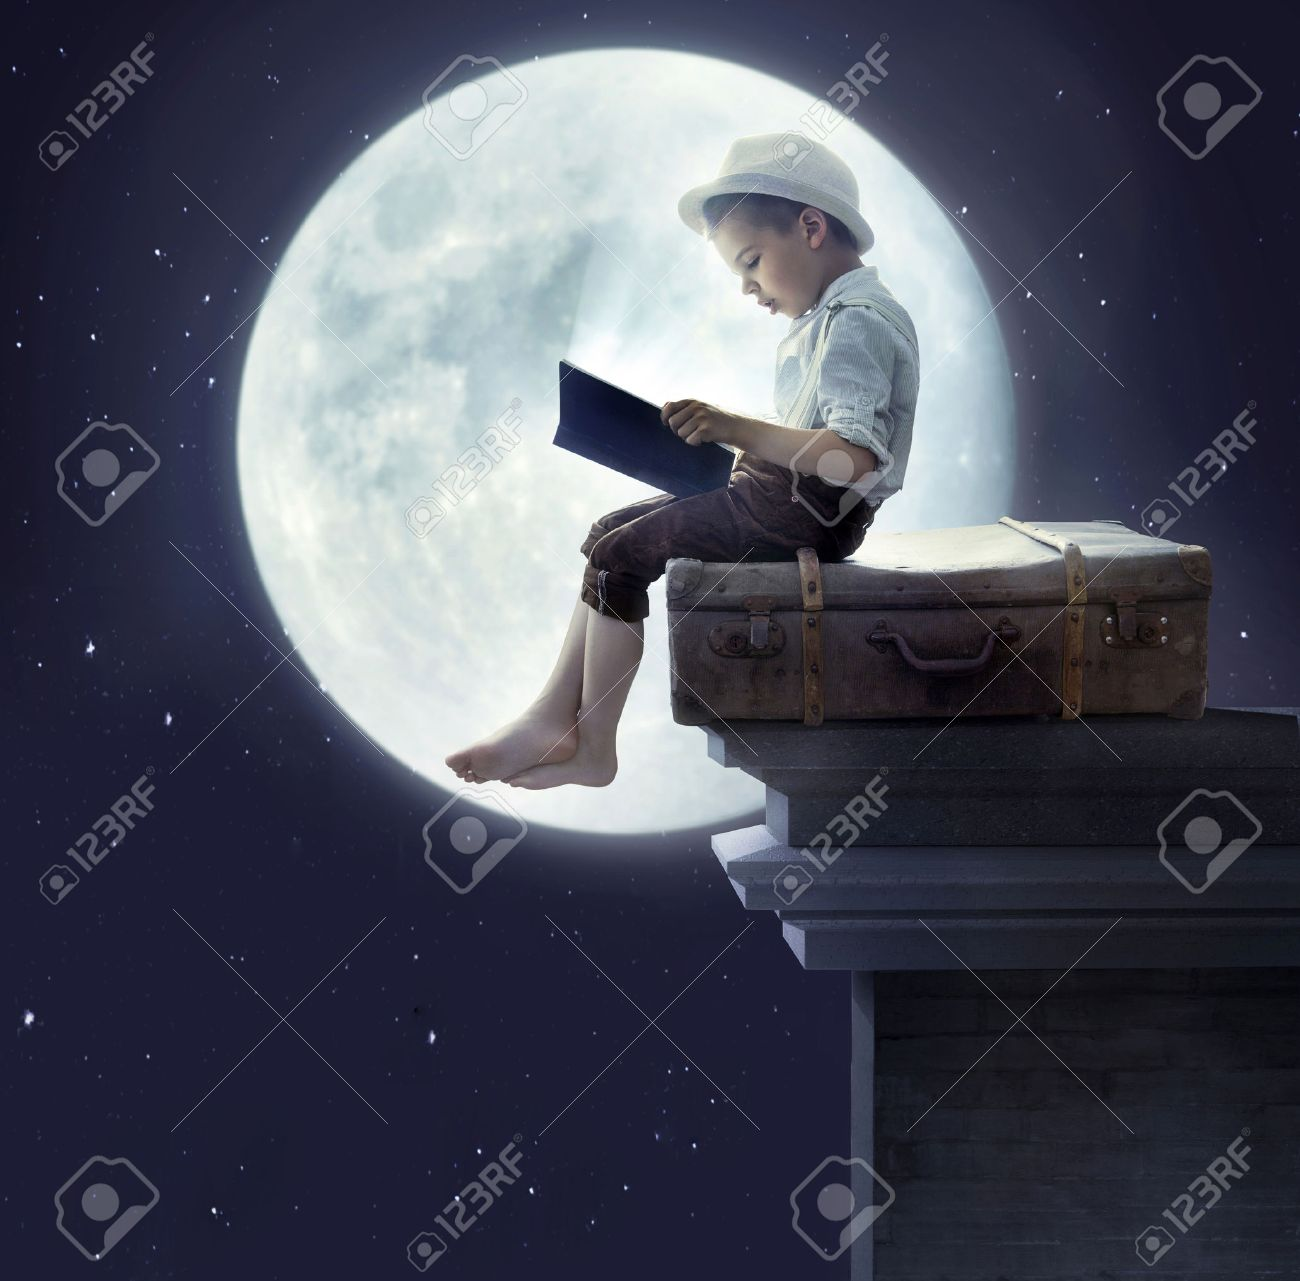 Kids at night with moon royalty free stock photography image - Portrait Of A Little Boy Reading A Fairy Tale